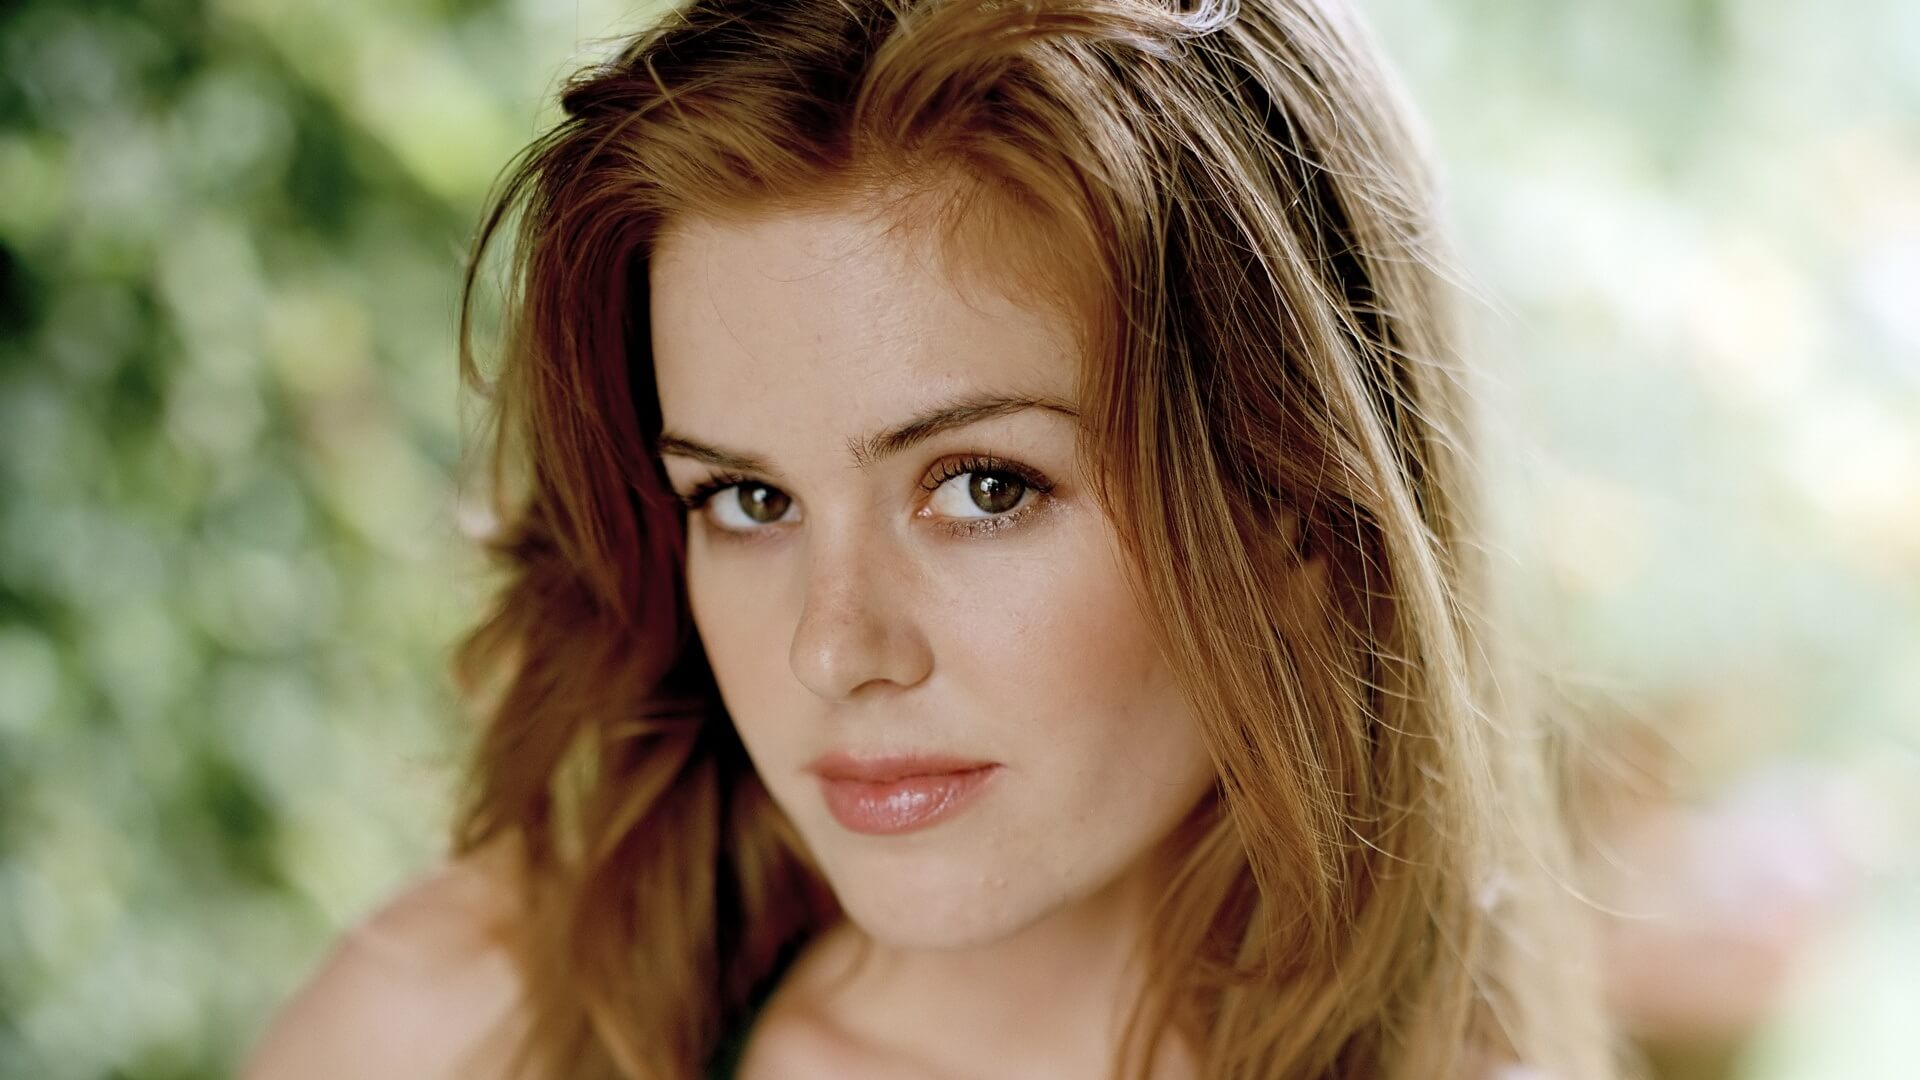 isla fisher wallpaper background